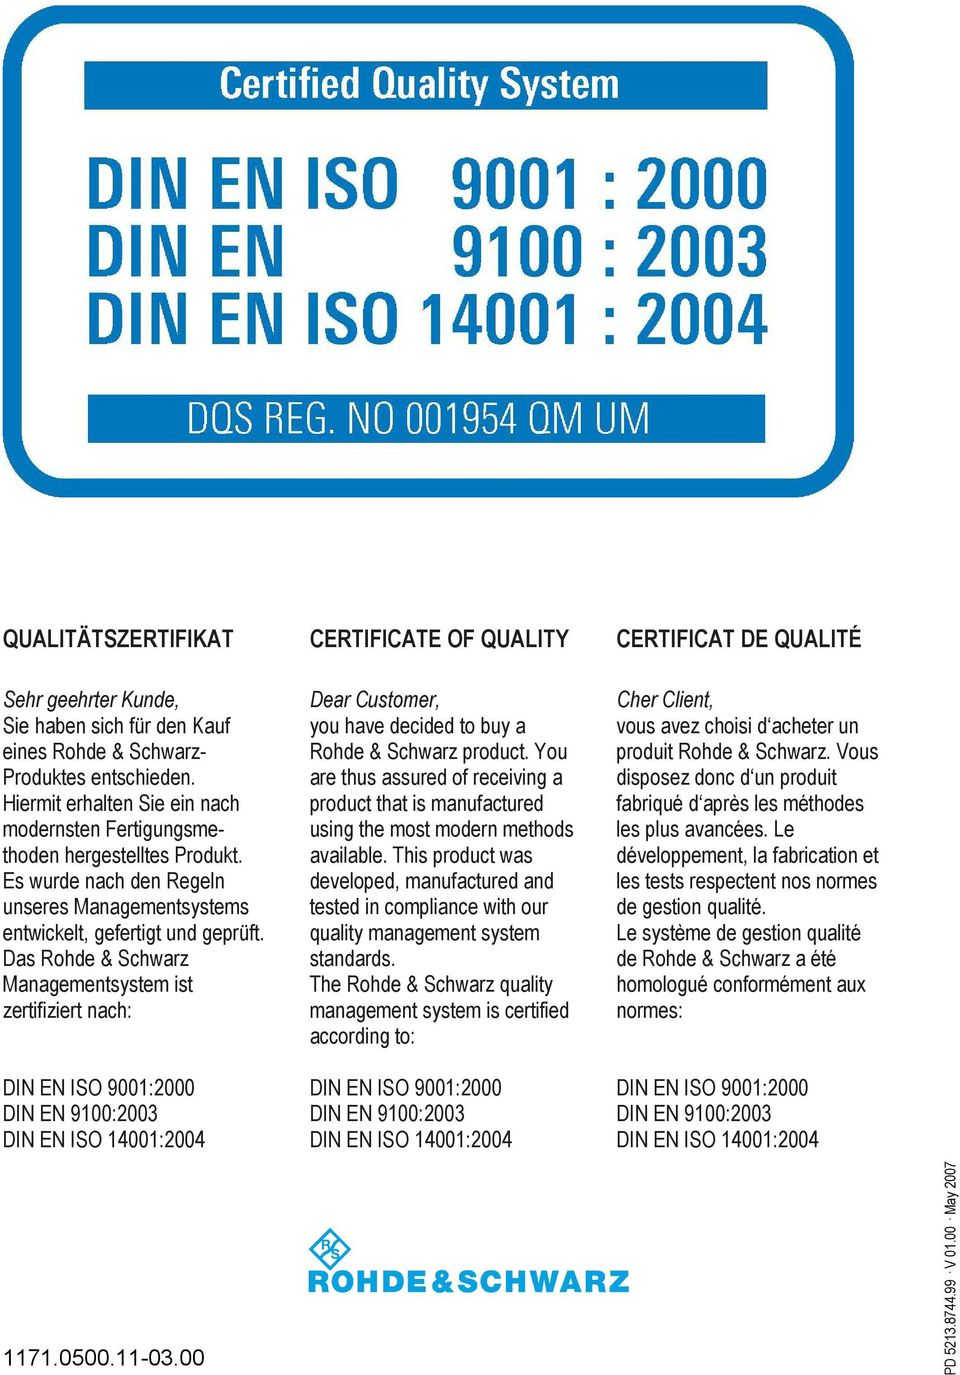 Das Rohde & Schwarz Managementsystem ist zertifiziert nach: DIN EN ISO 9001:2000 DIN EN 9100:2003 DIN EN ISO 14001:2004 CERTIFICATE OF QUALITY Dear Customer, you have decided to buy a Rohde & Schwarz